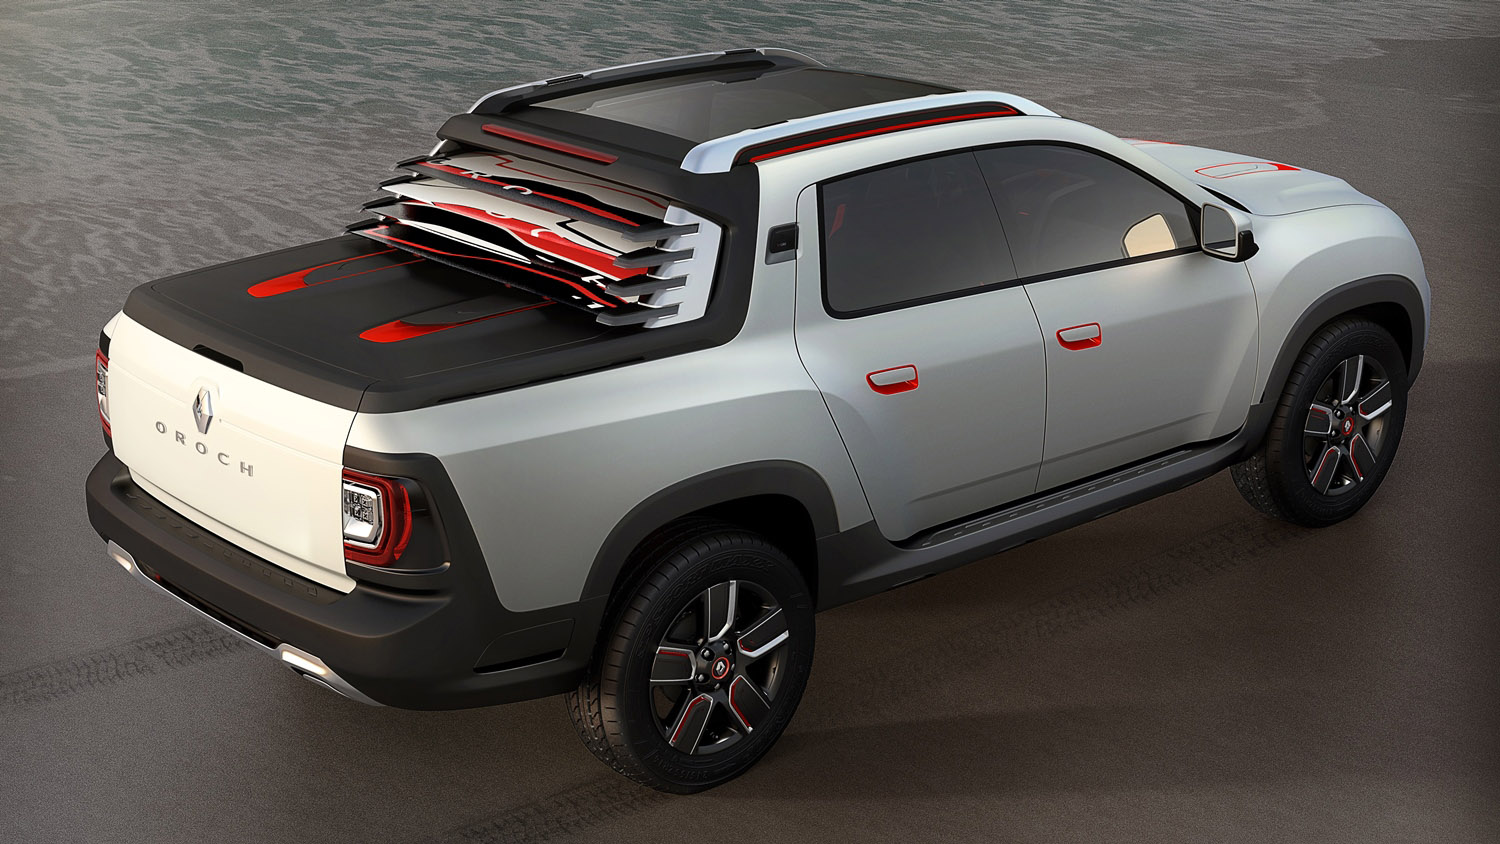 dacia duster oroch revealed in sao paulo. Black Bedroom Furniture Sets. Home Design Ideas